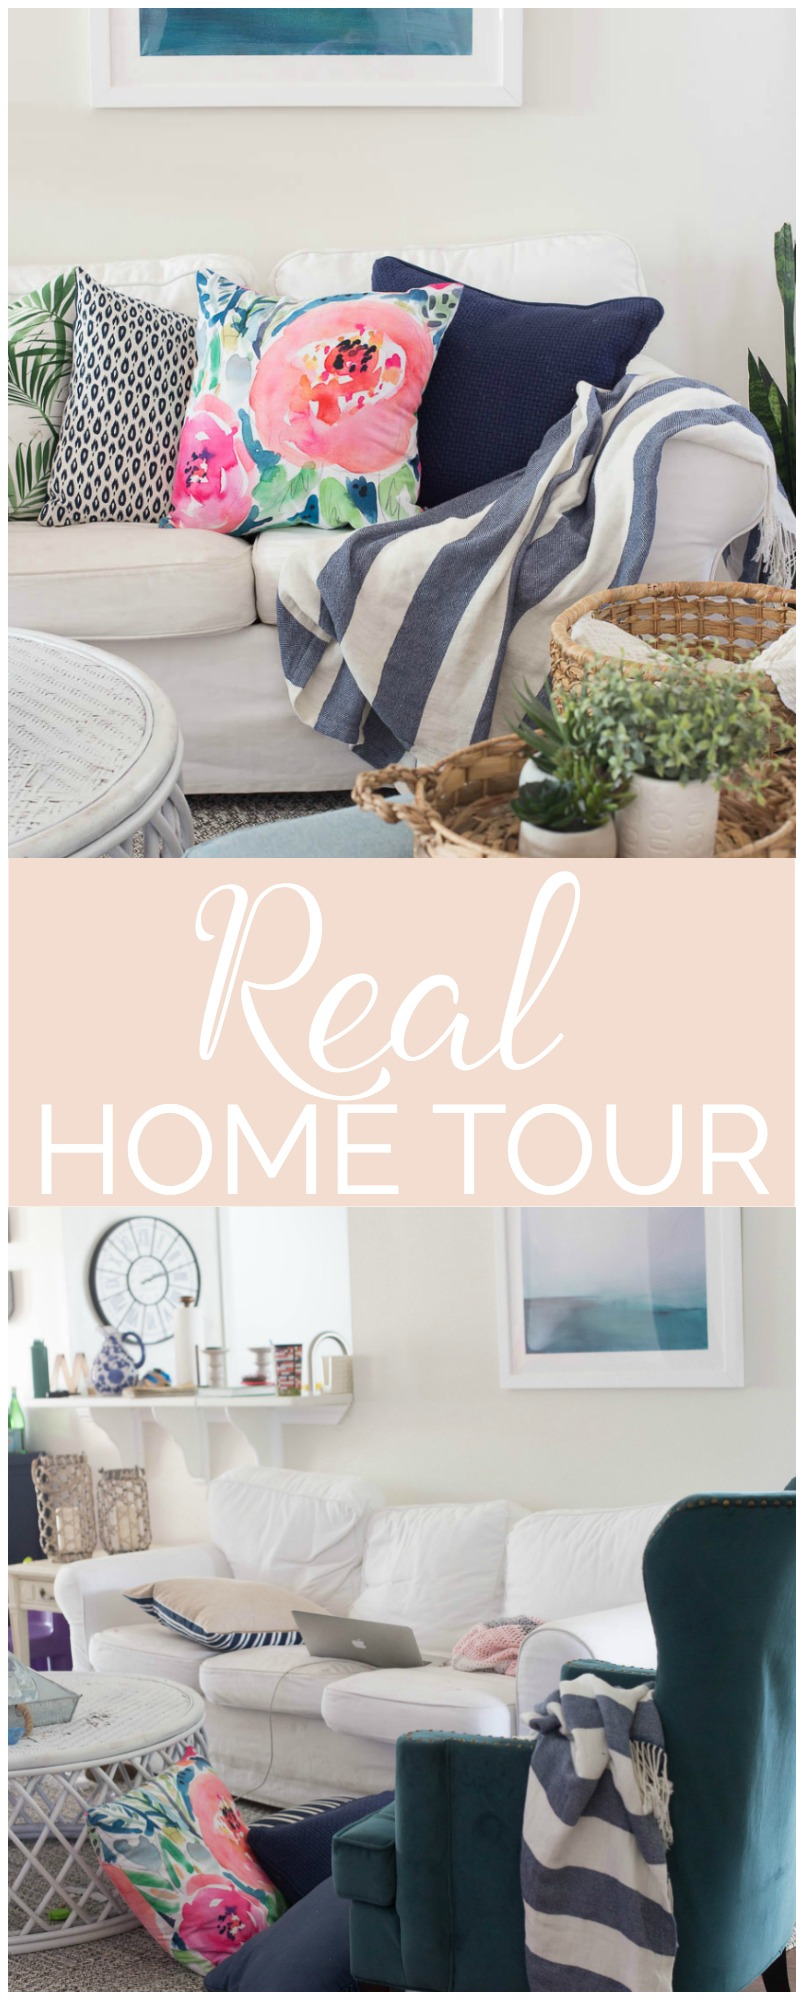 A real home tour from bloggers? Awesome! These six bloggers show what their homes really look like. I love this!